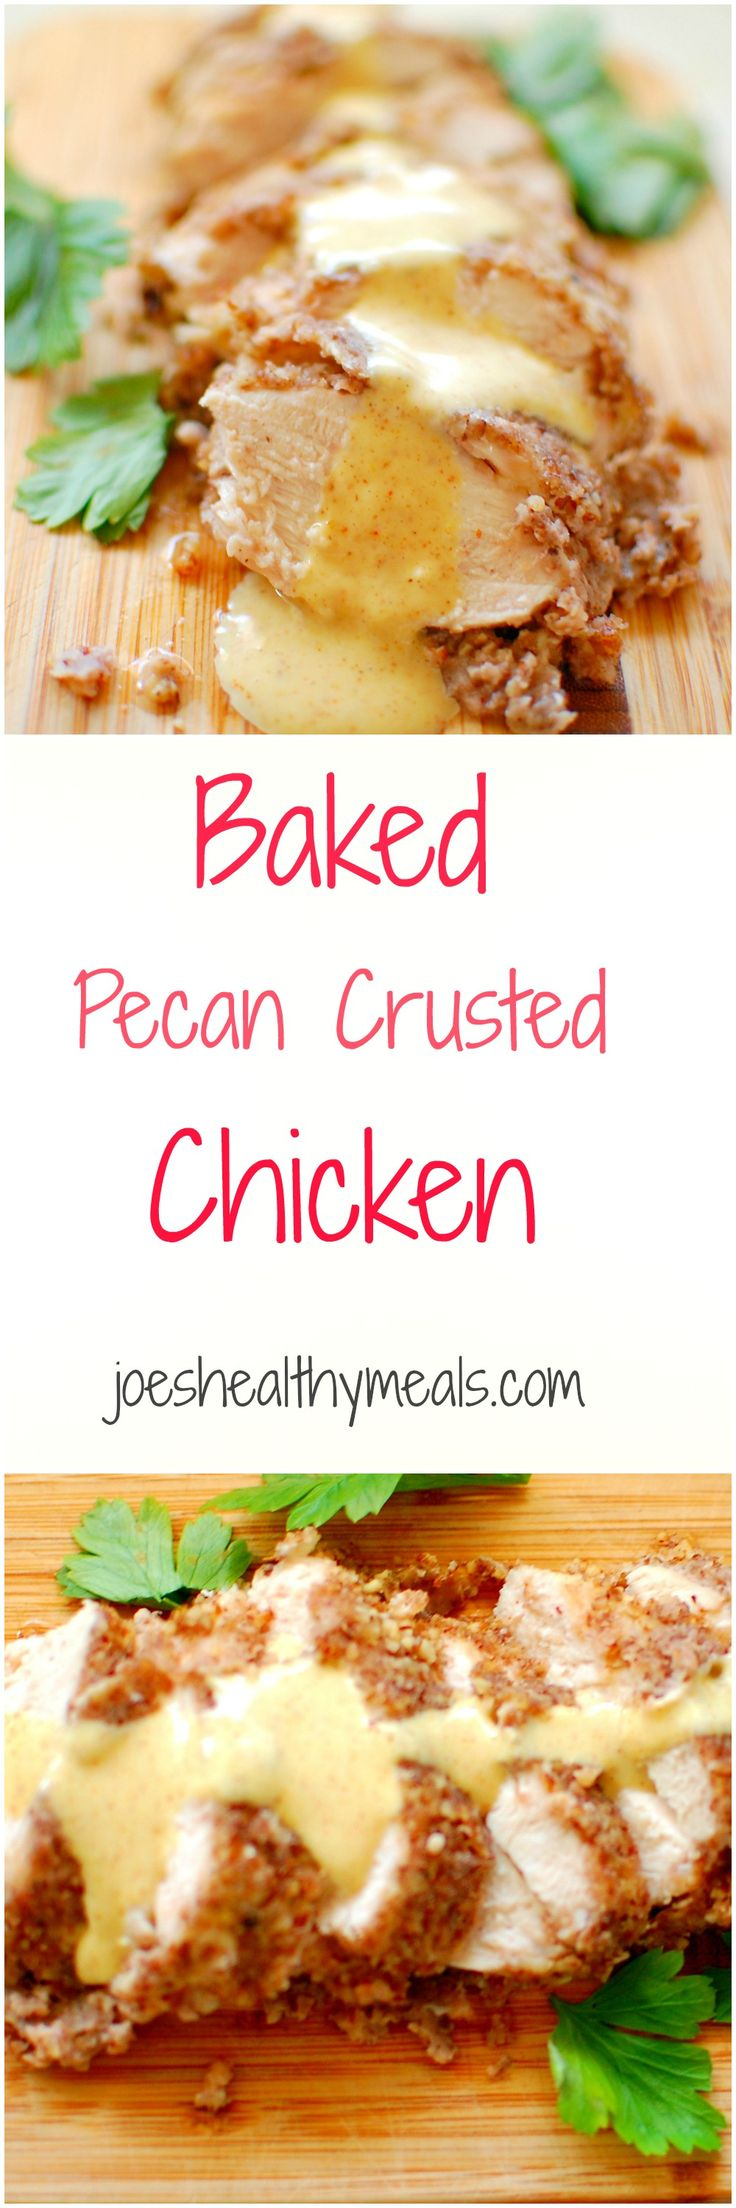 Baked chicken chockfull of delicious flavors!  Pecan Crusted Chicken Breasts. | joeshealthymeals.com